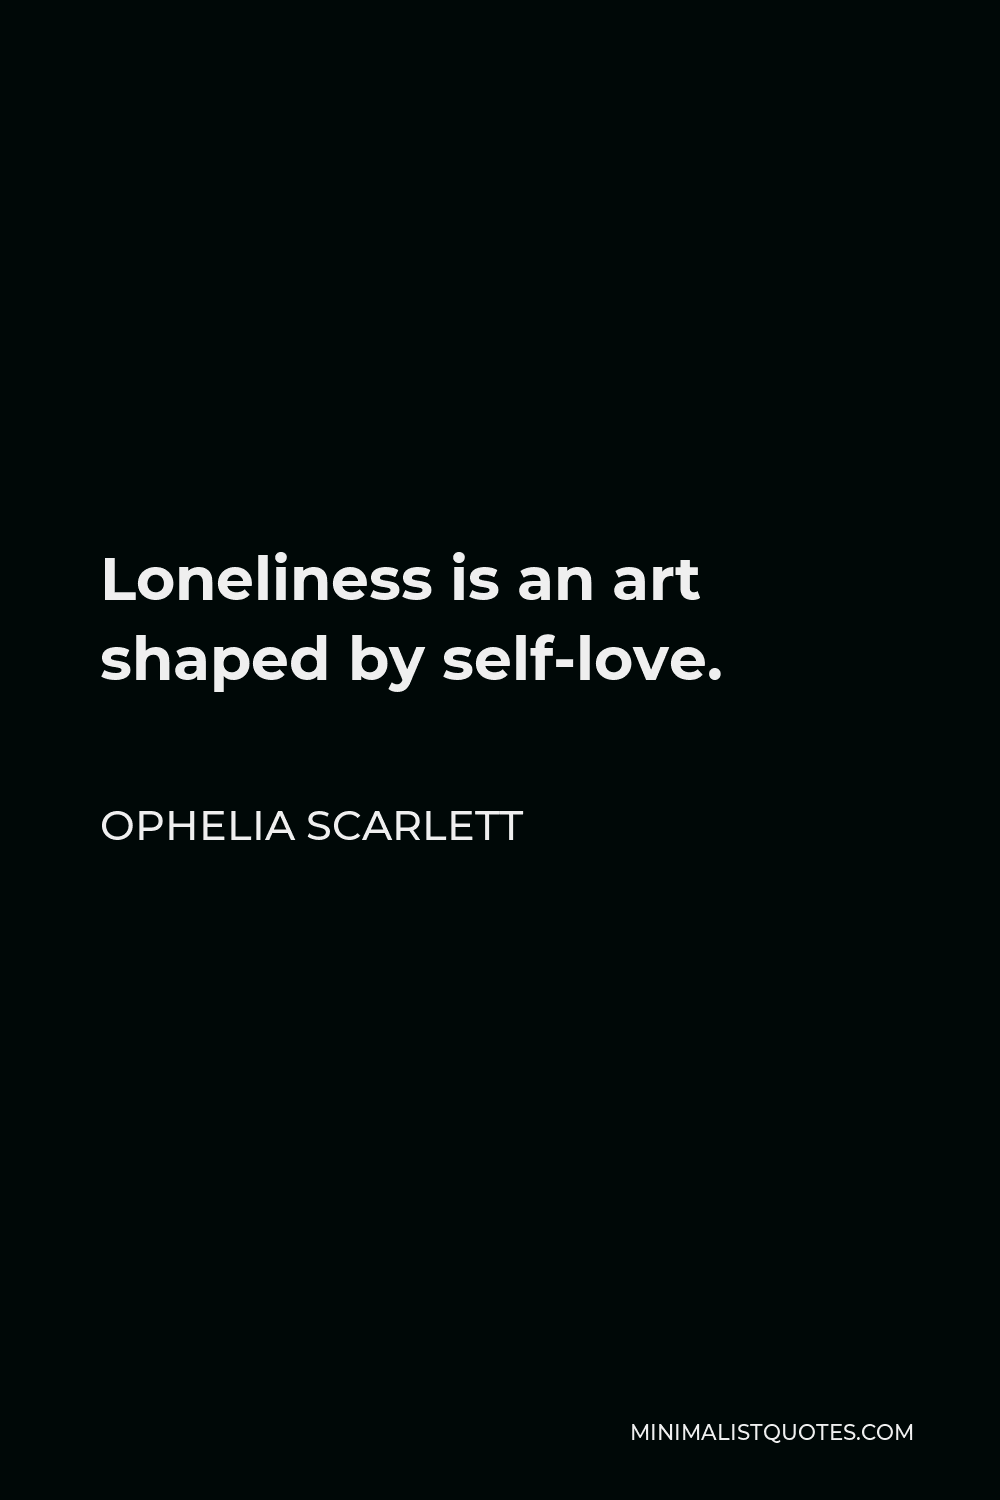 Ophelia Scarlett Quote - Loneliness is an art shaped by self-love.